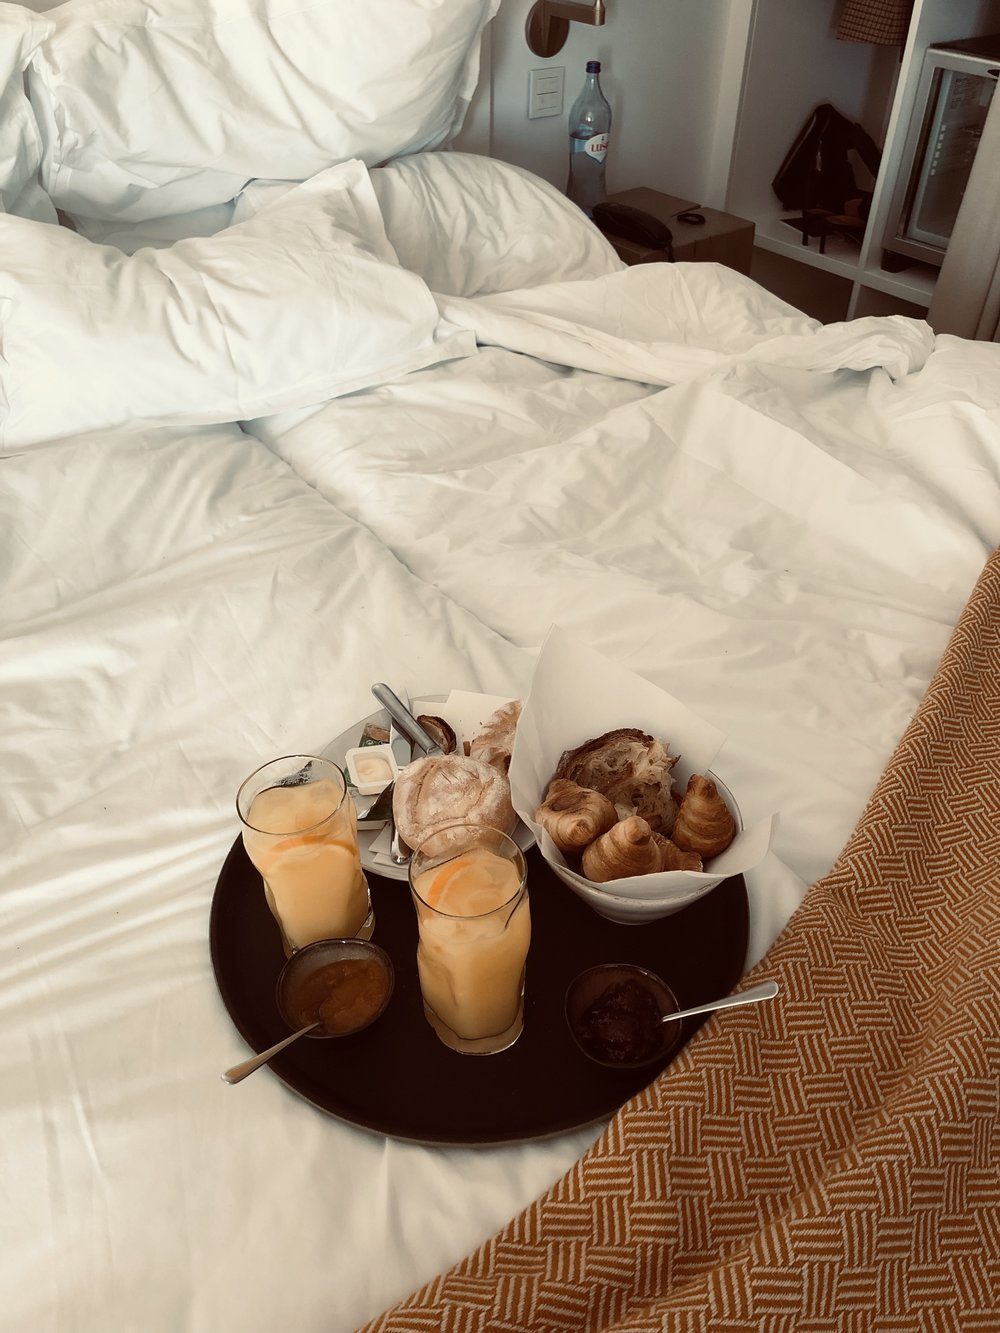 Breakfast in bed. - I could get used to that.